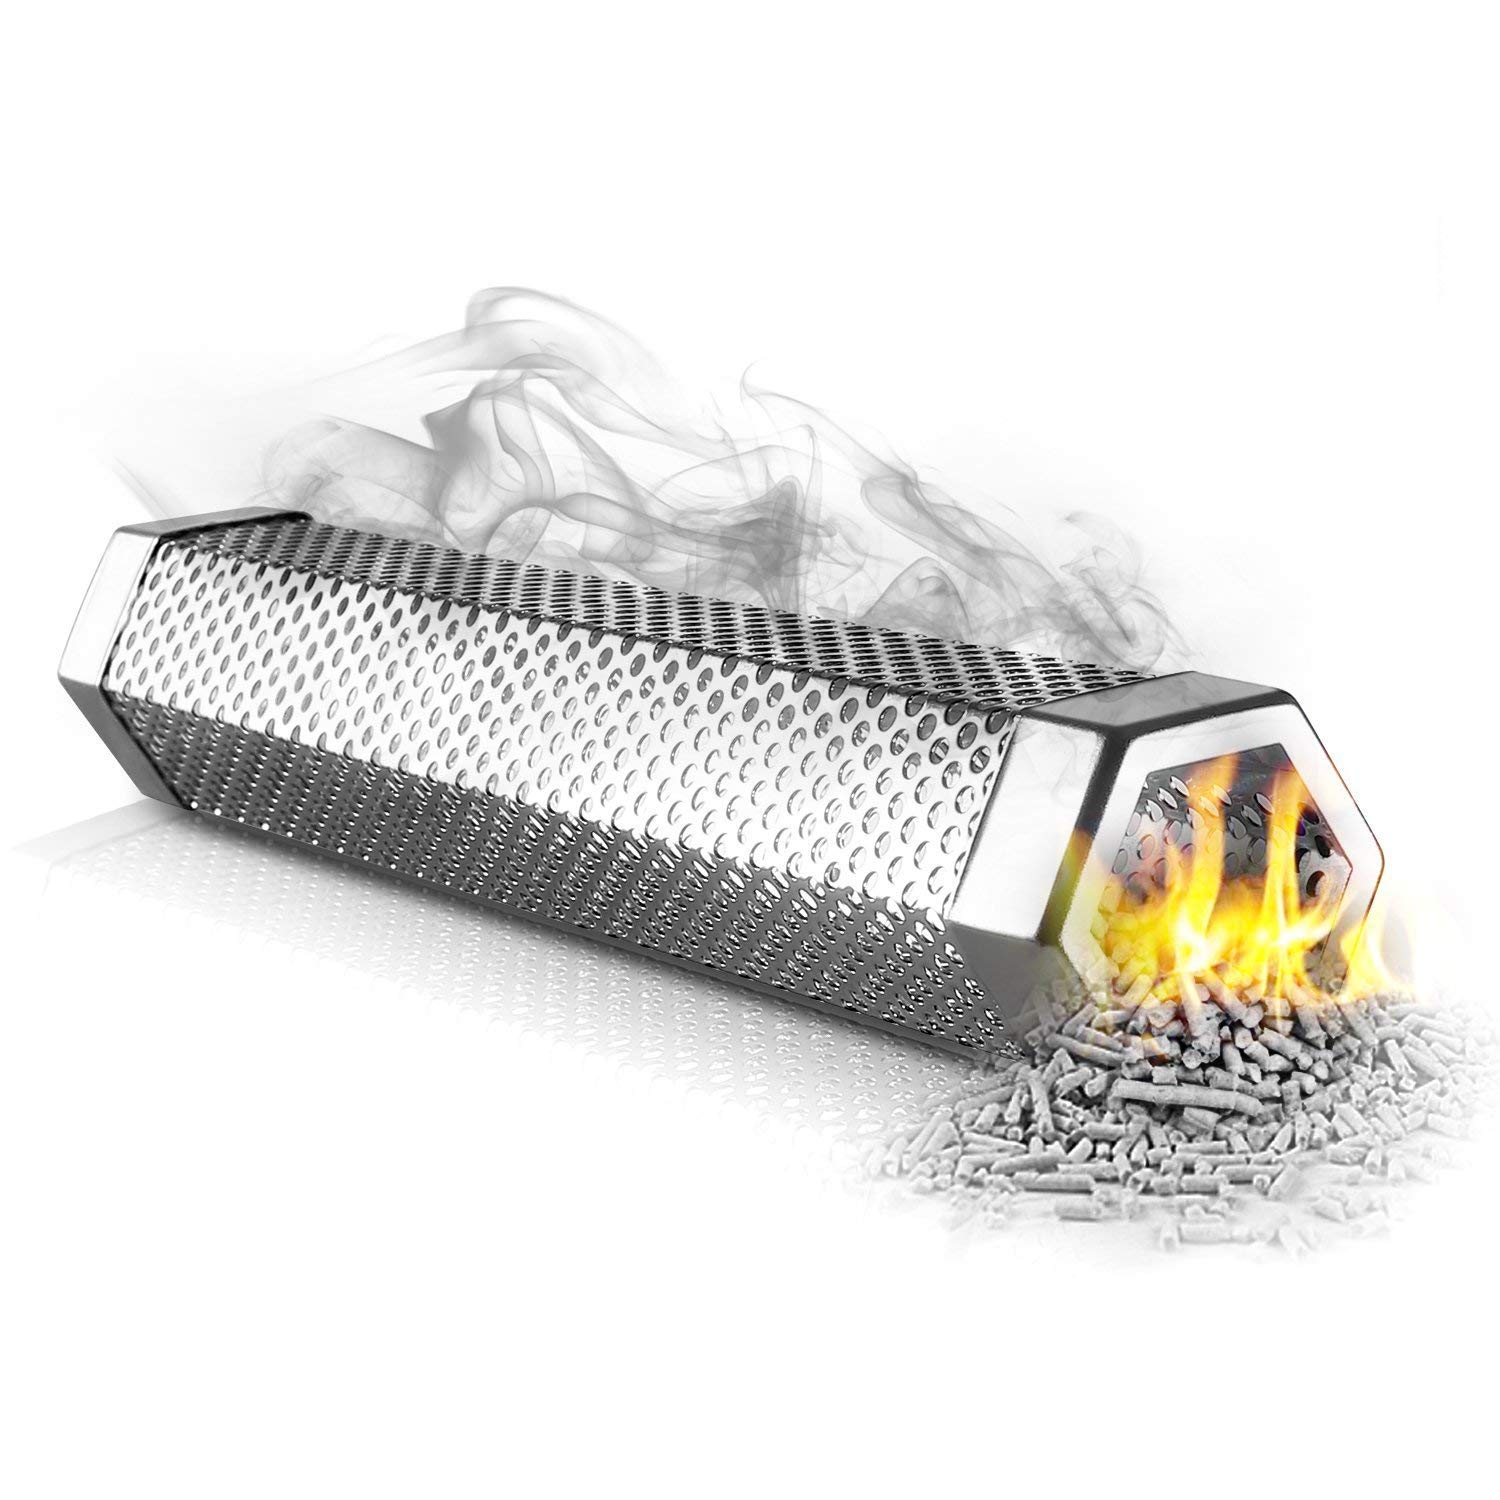 Fun-Ker Premium Pellet Smoker Tube 12'' - 5 Hours Billowing Smoke any Grill Smoker, Hot Cold Smoking - Easy, safety tasty smoking - Free eBook Grilling Ideas Recipes